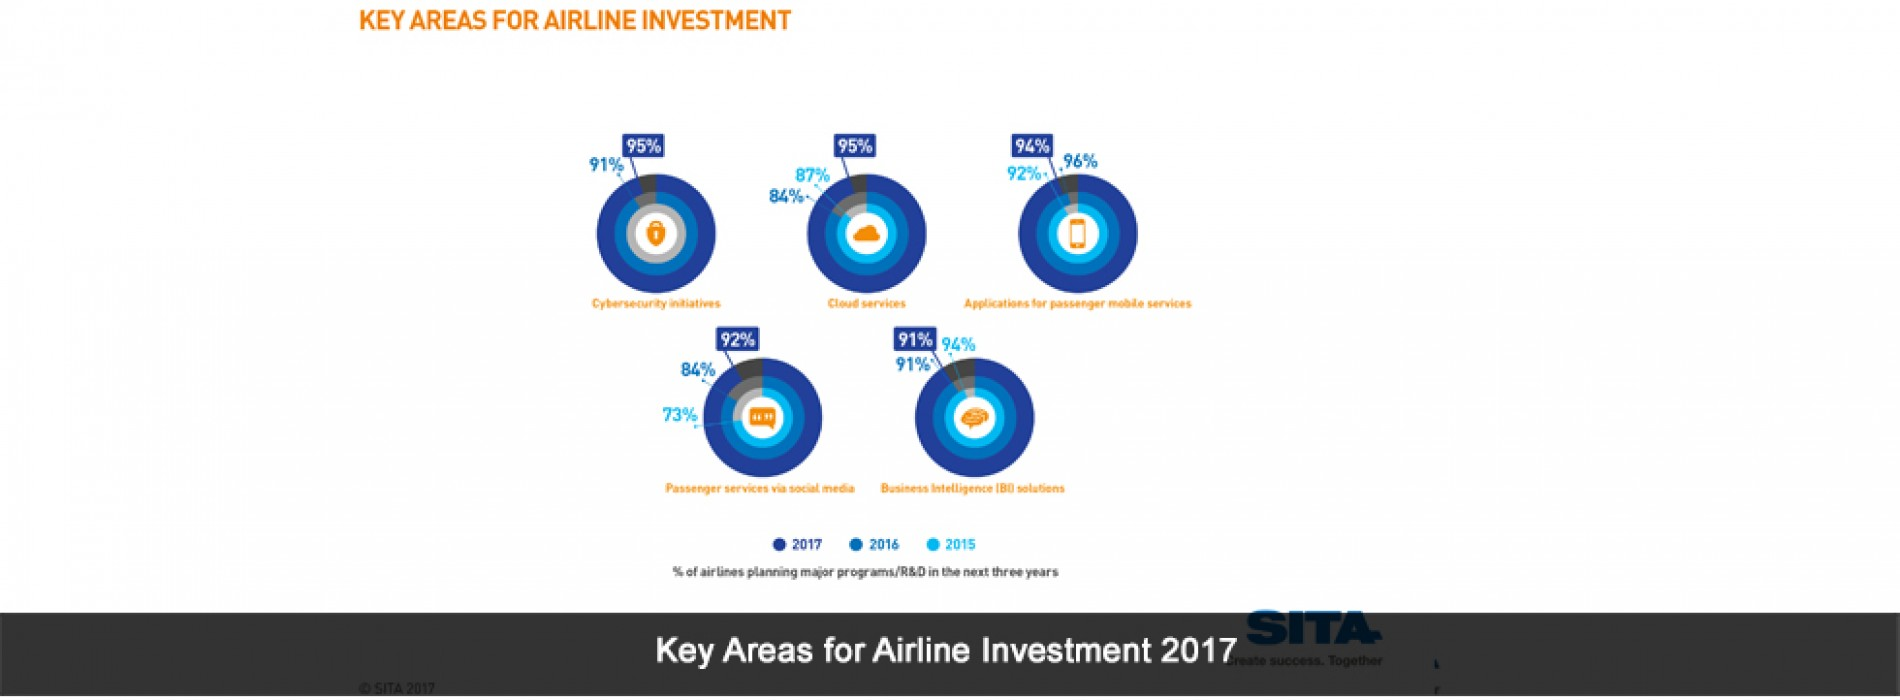 Airlines and Airports to invest US$33 Billion in I.T. this year